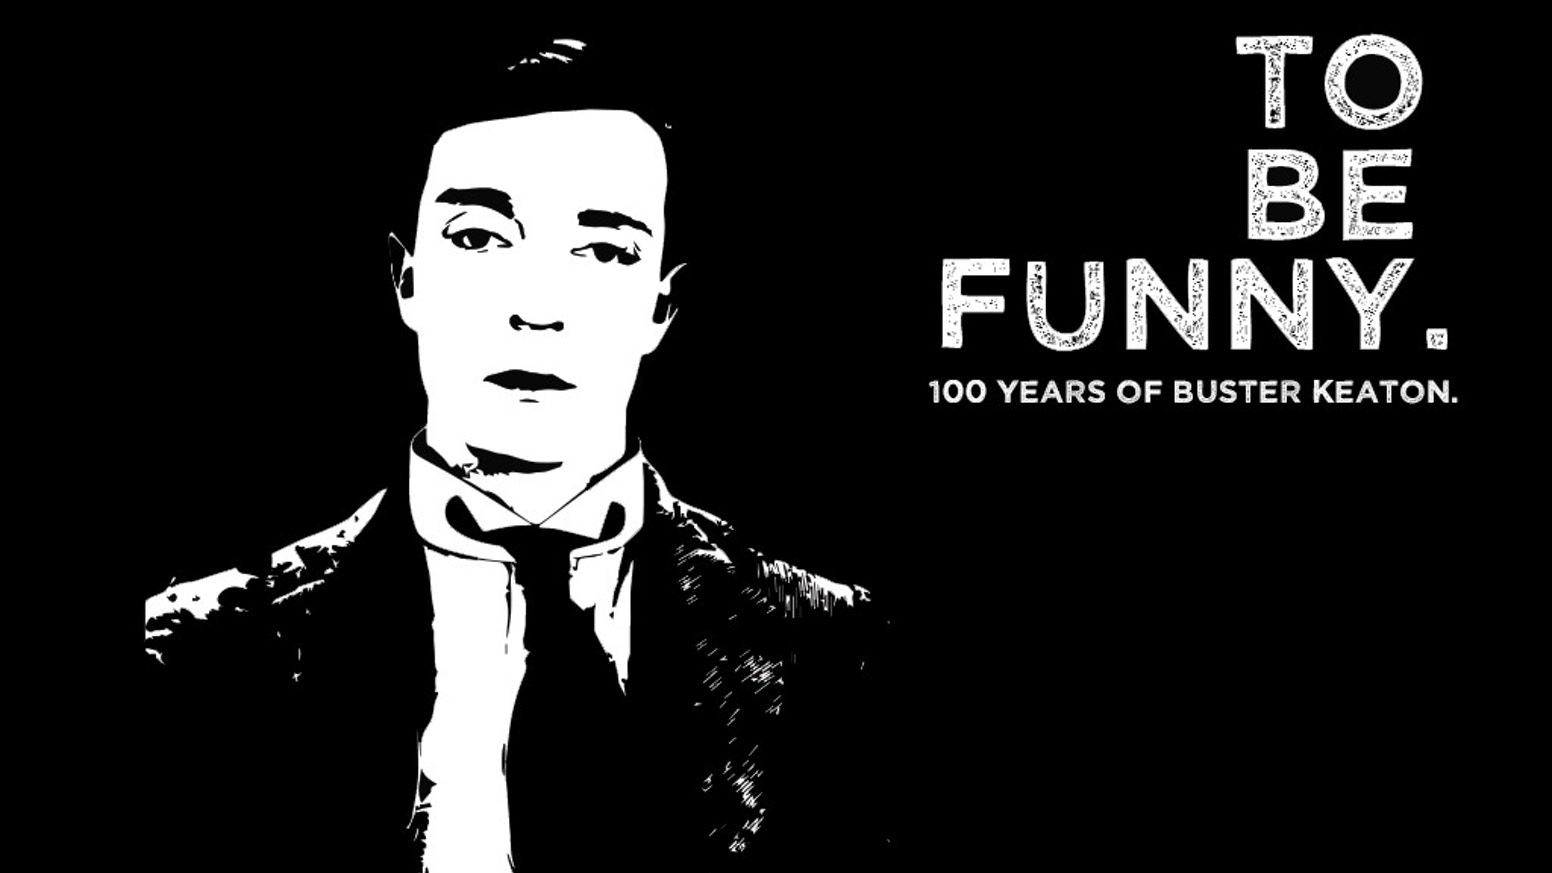 A documentary exploring Buster Keaton's enduring legacy...100 years after his first appearance on film.